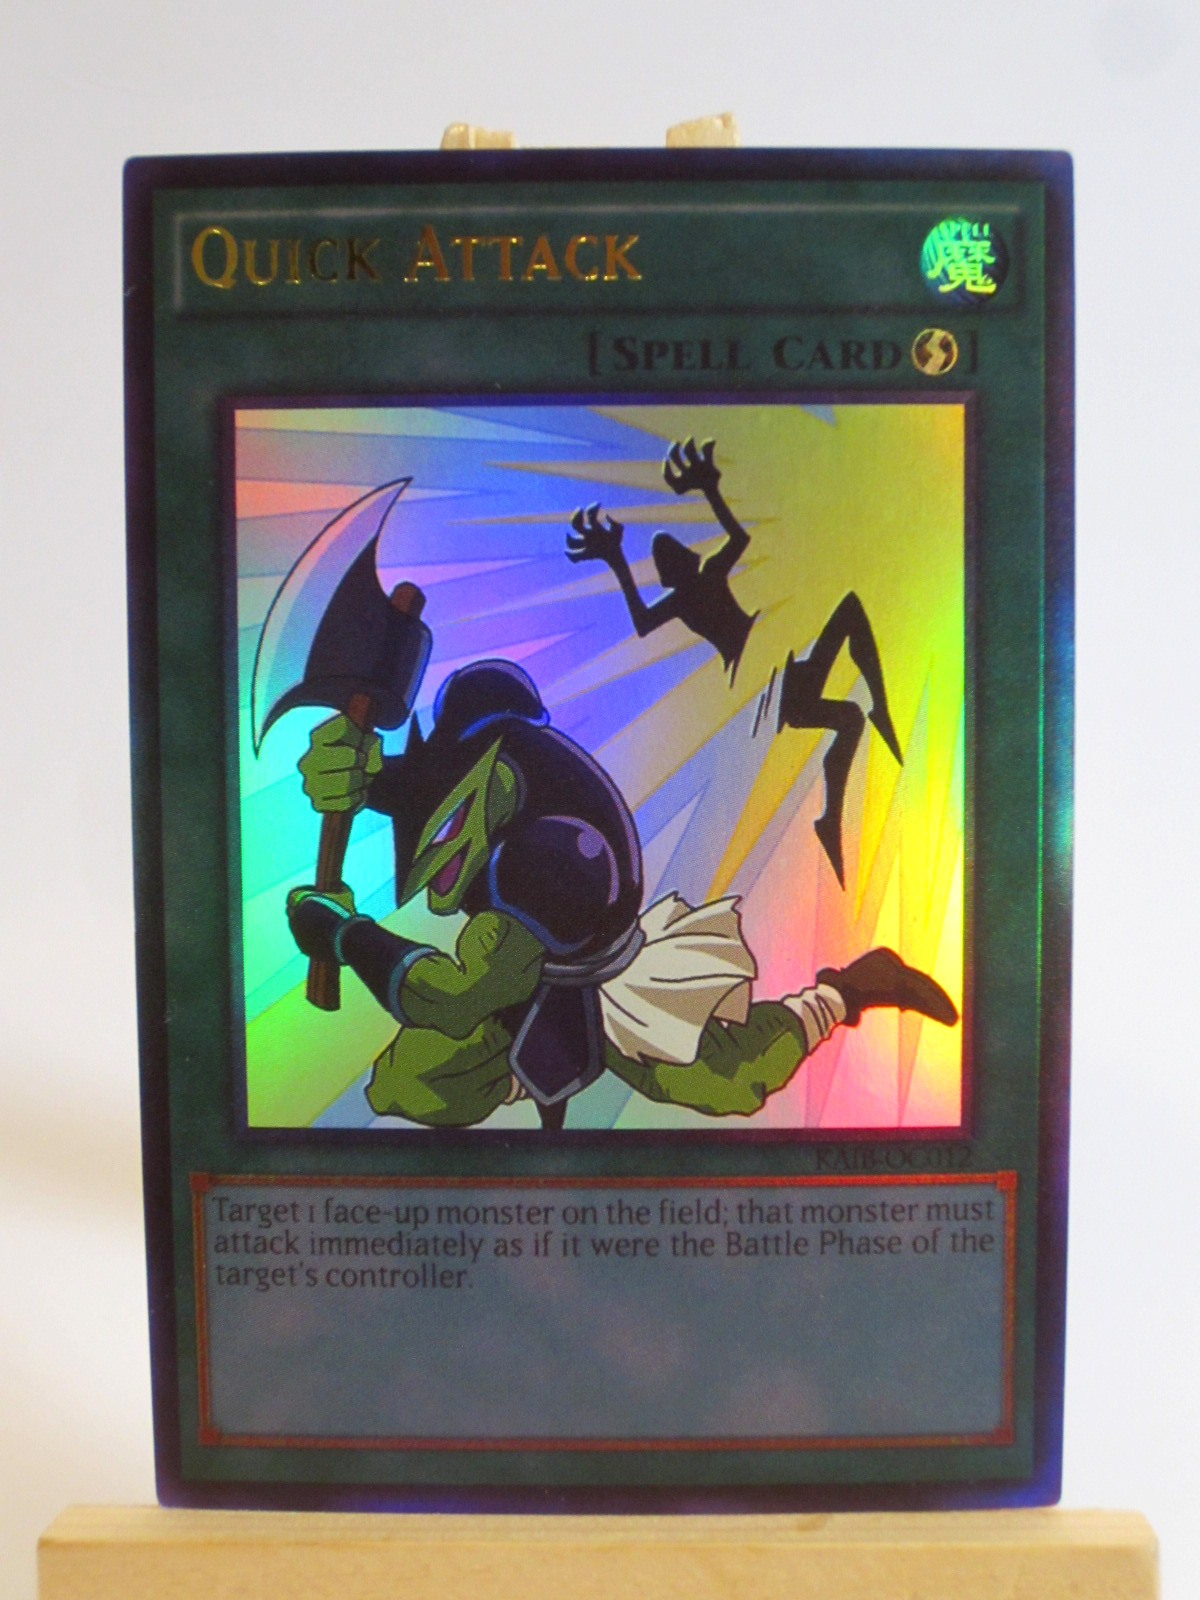 Quick Attack Oricacardcom